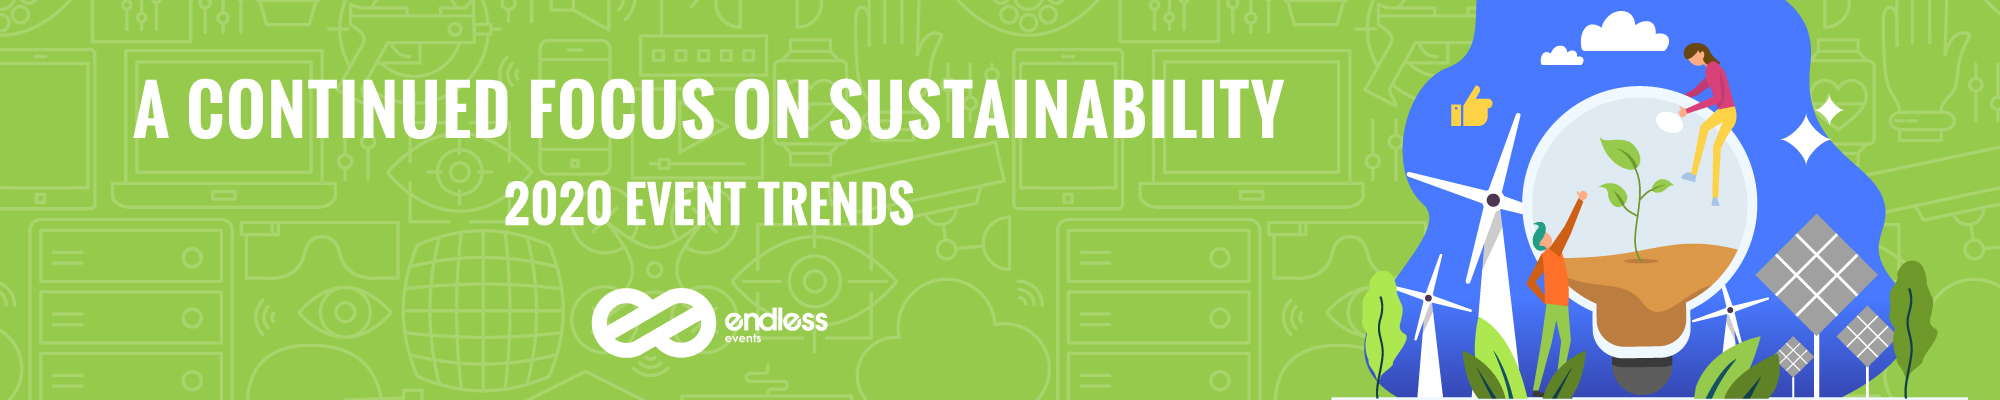 2020 event trends